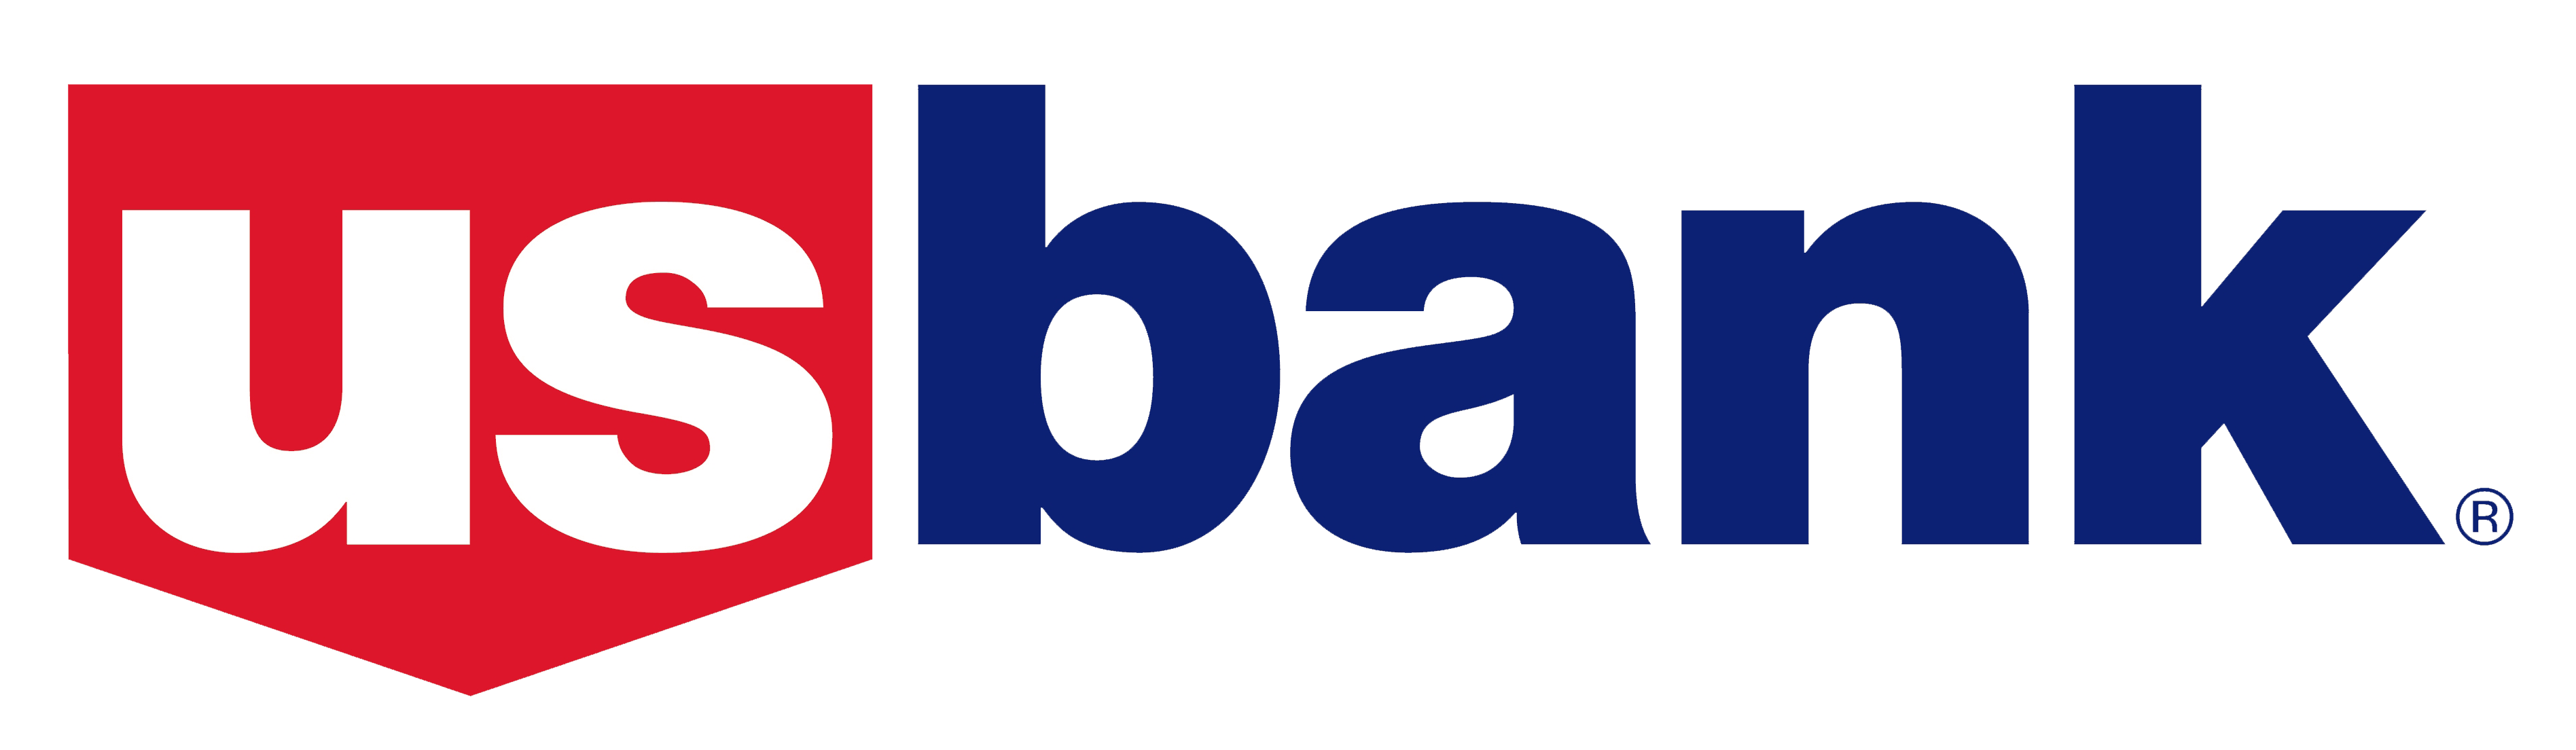 US-Bank-Logo_Transparent_(002).png